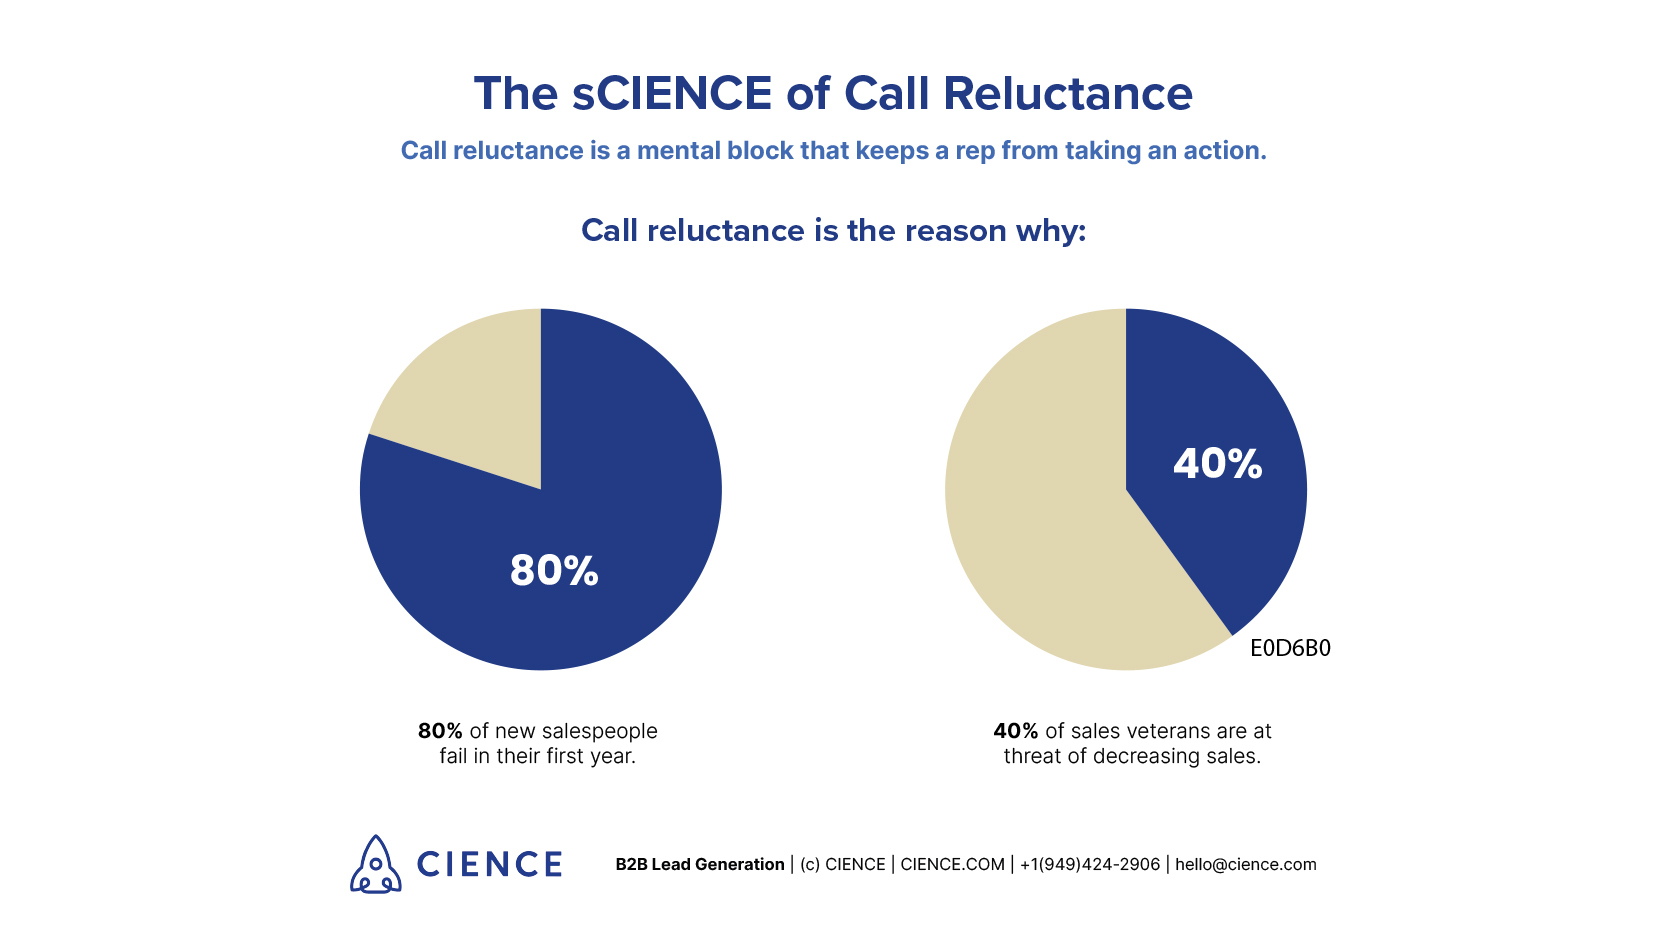 Call reluctance consequences